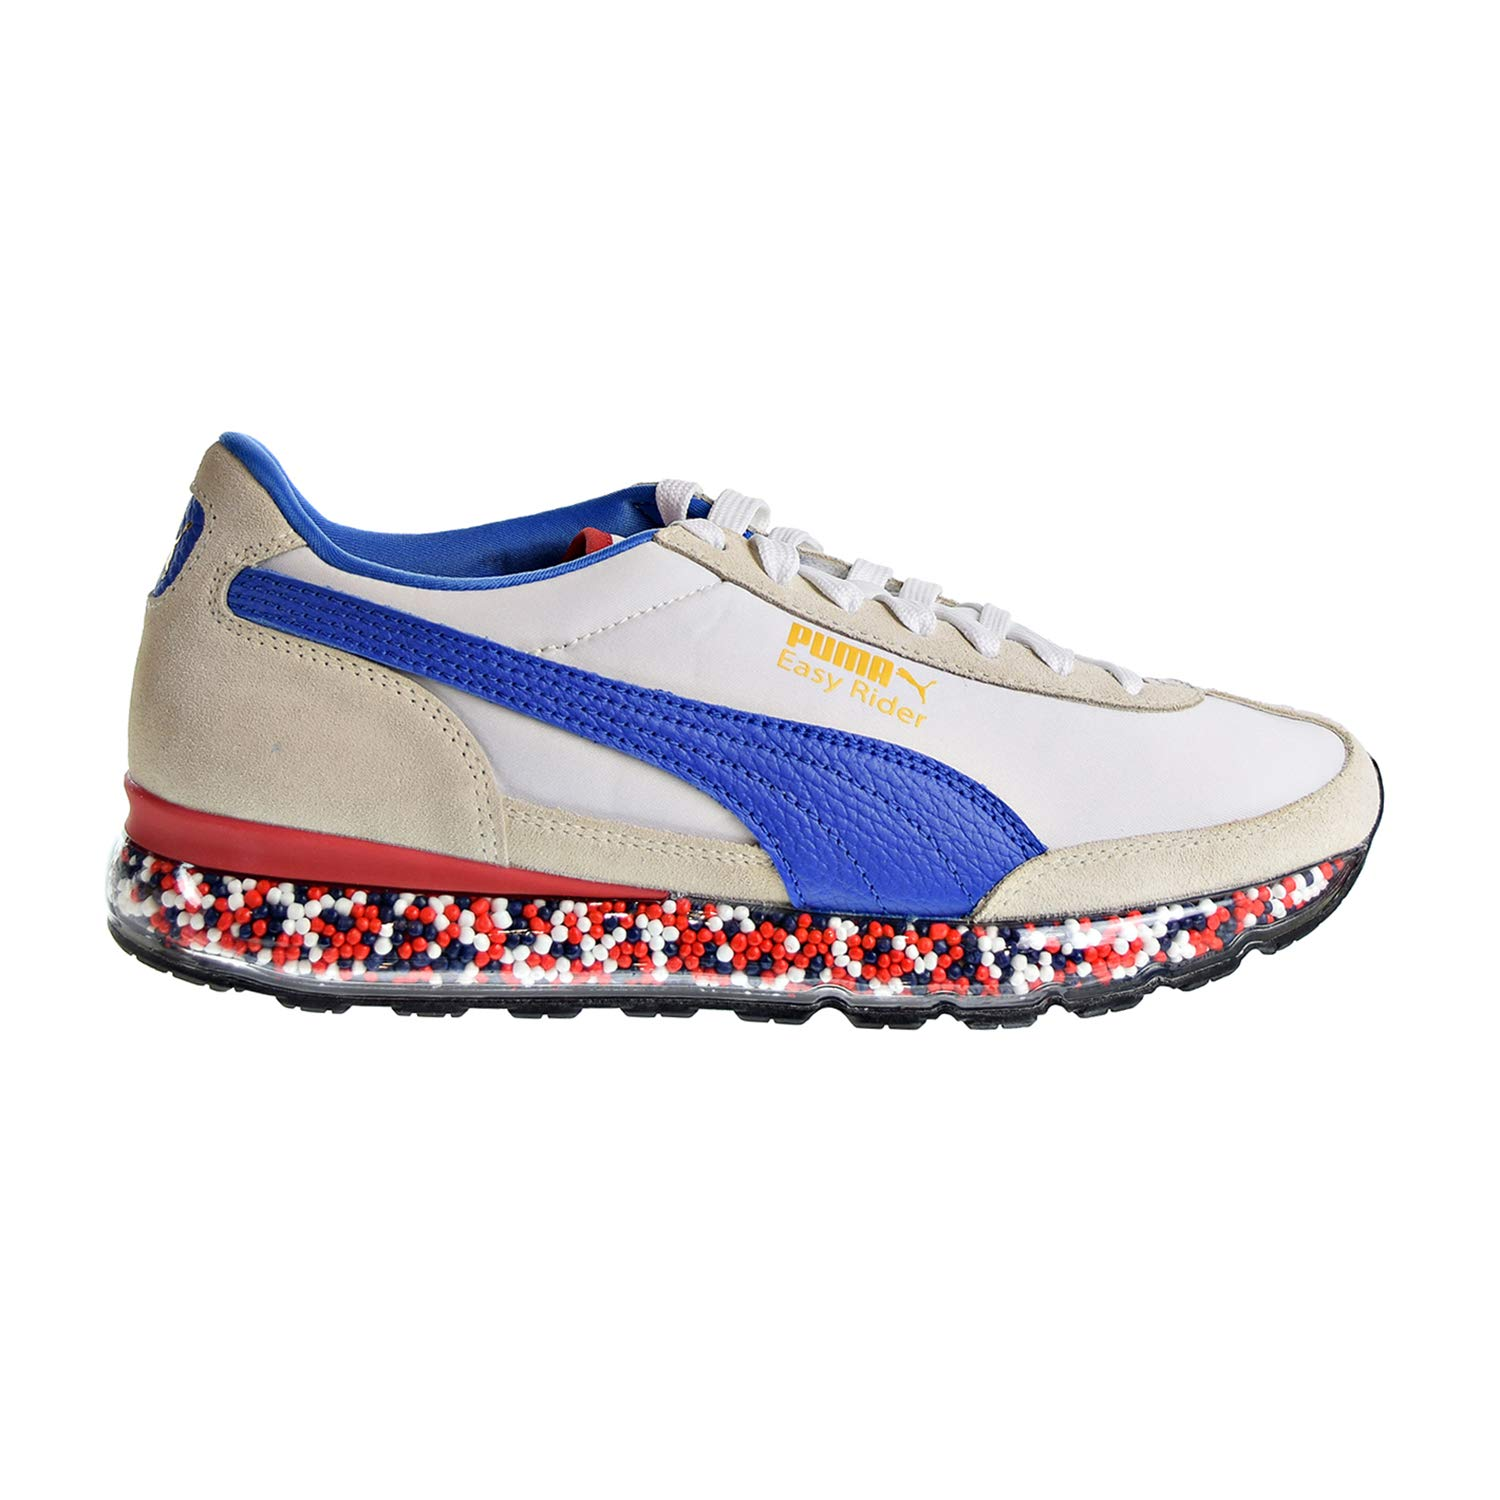 Jamming Easy Rider Running Shoes